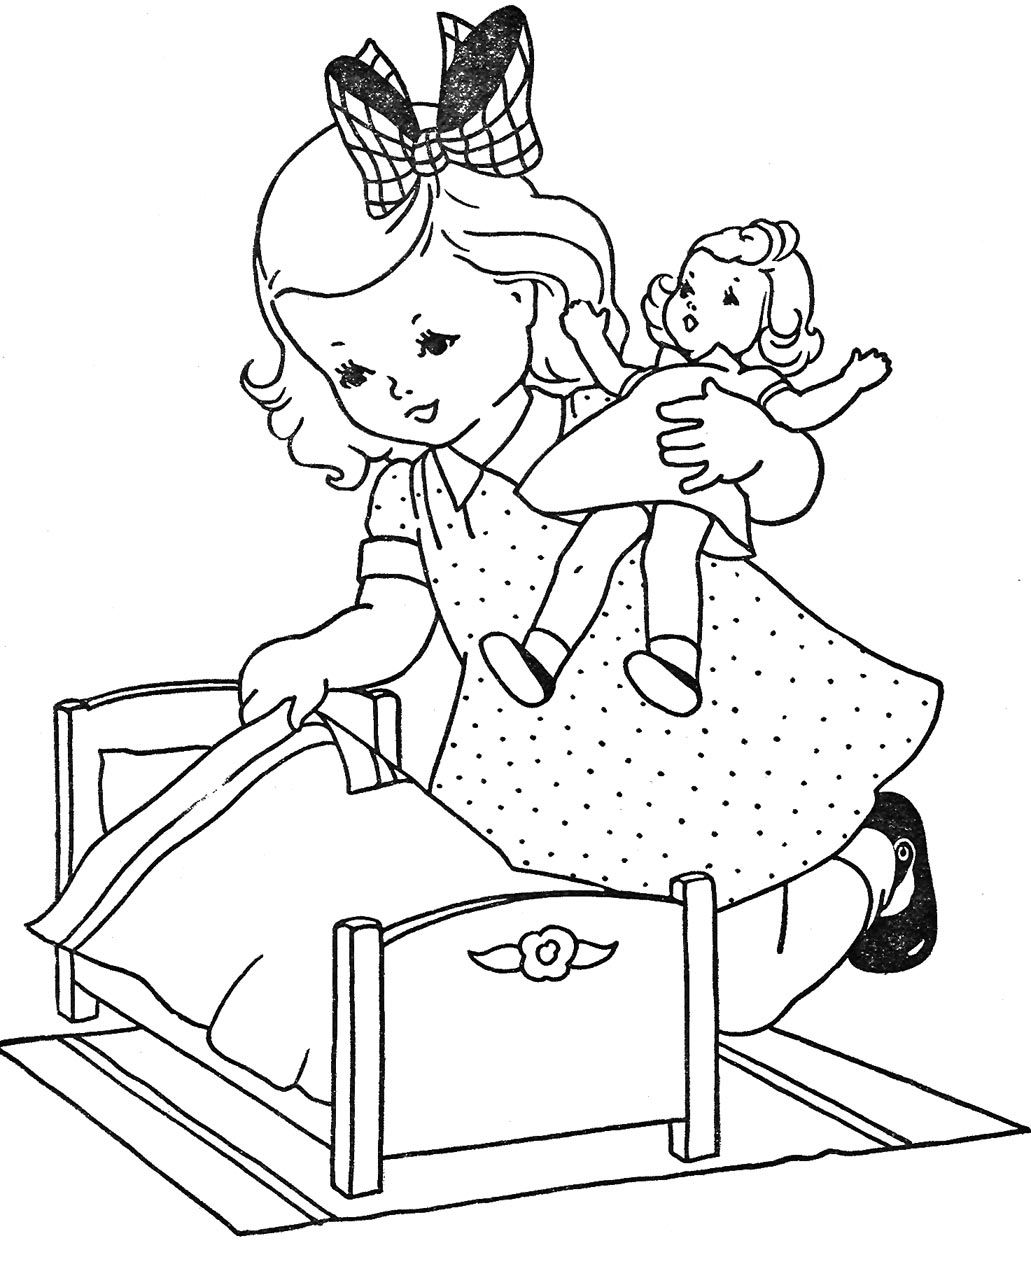 coloring sheets kids caillou coloring pages best coloring pages for kids coloring kids sheets